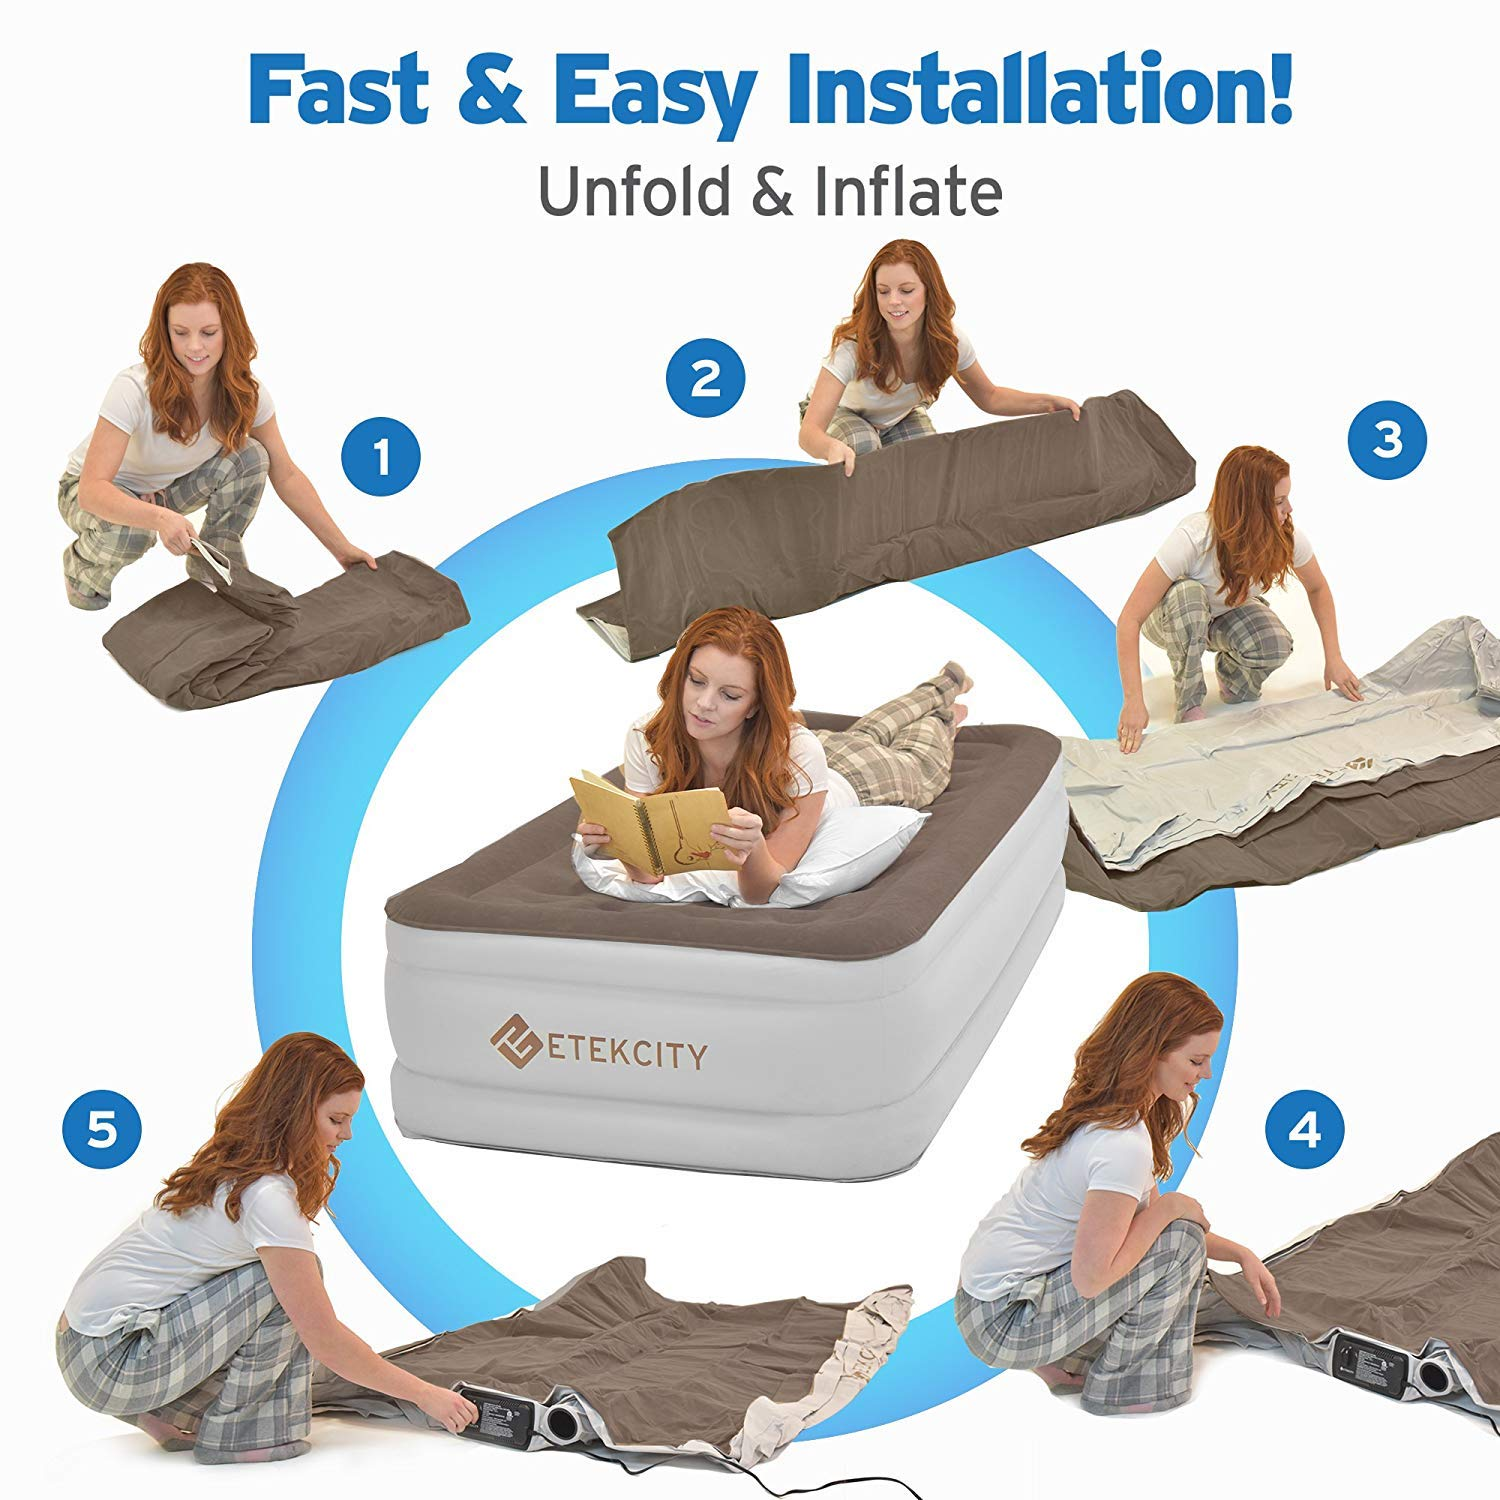 Etekcity Upgraded Twin Queen Size Air Mattress - Blow Up Bed Inflatable Mattress Raised Air Bed with Built-in Pump for Guest, Camping, Height 18'/22', Storage Bag, 2-Year Warranty (Queen) Height 18/22 EAM-DQ1